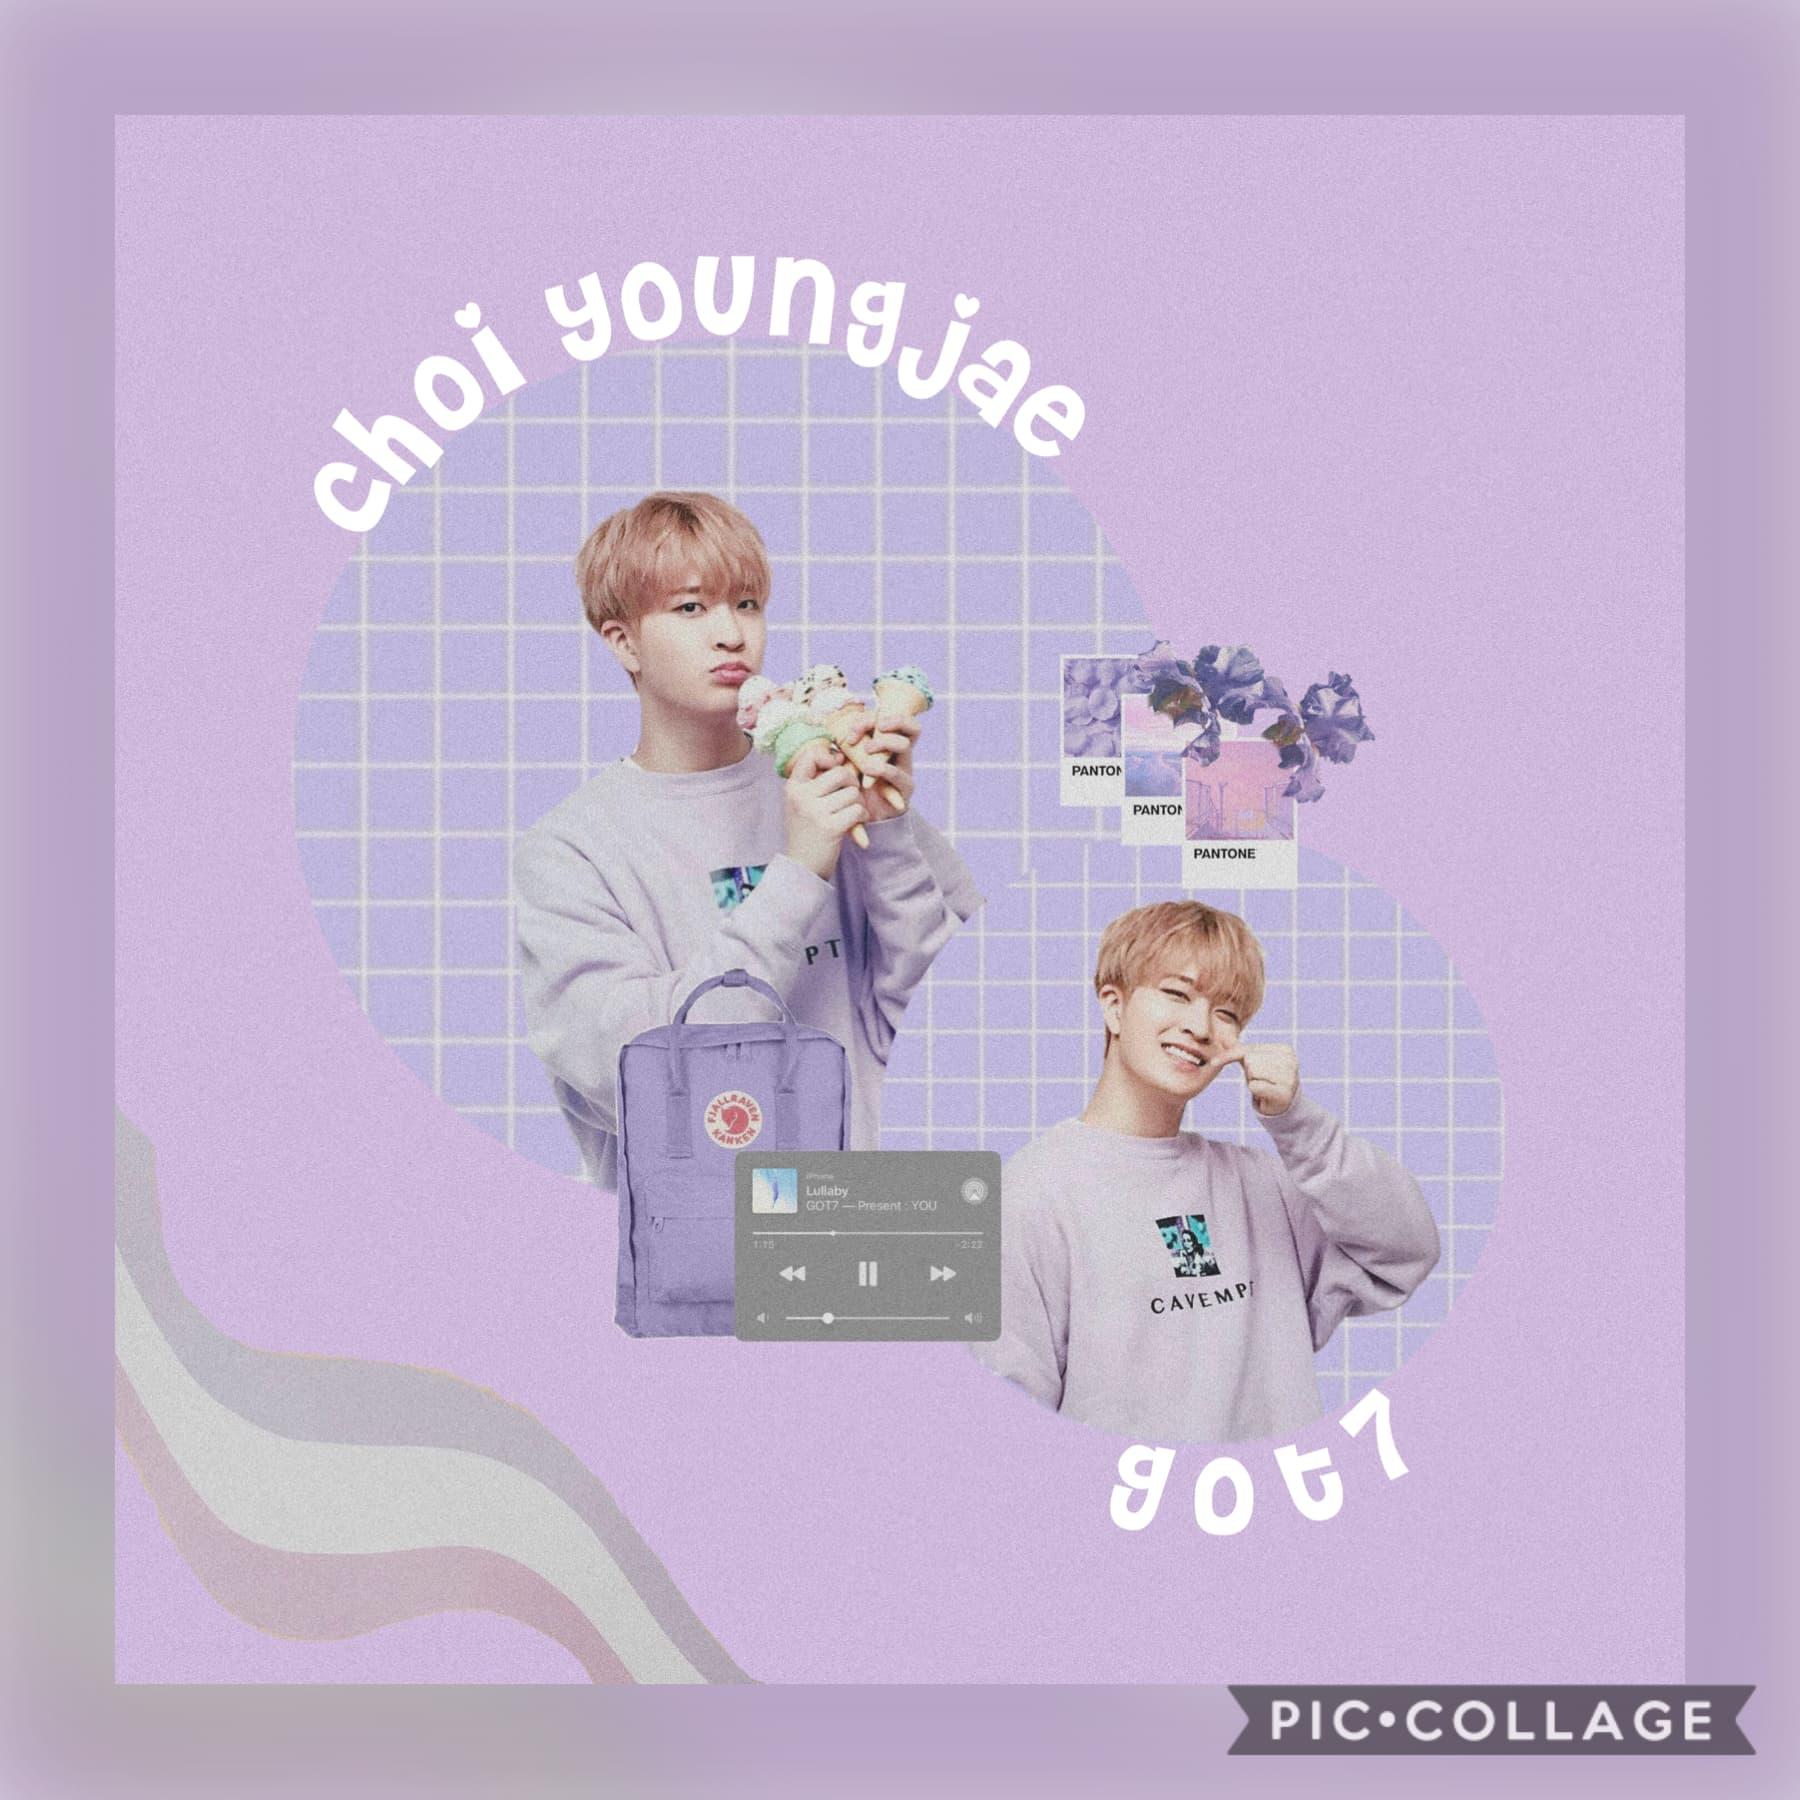 💜 youngjaeee🥺 I'll try to post another collage later :)) hope y'all are doing well 💖